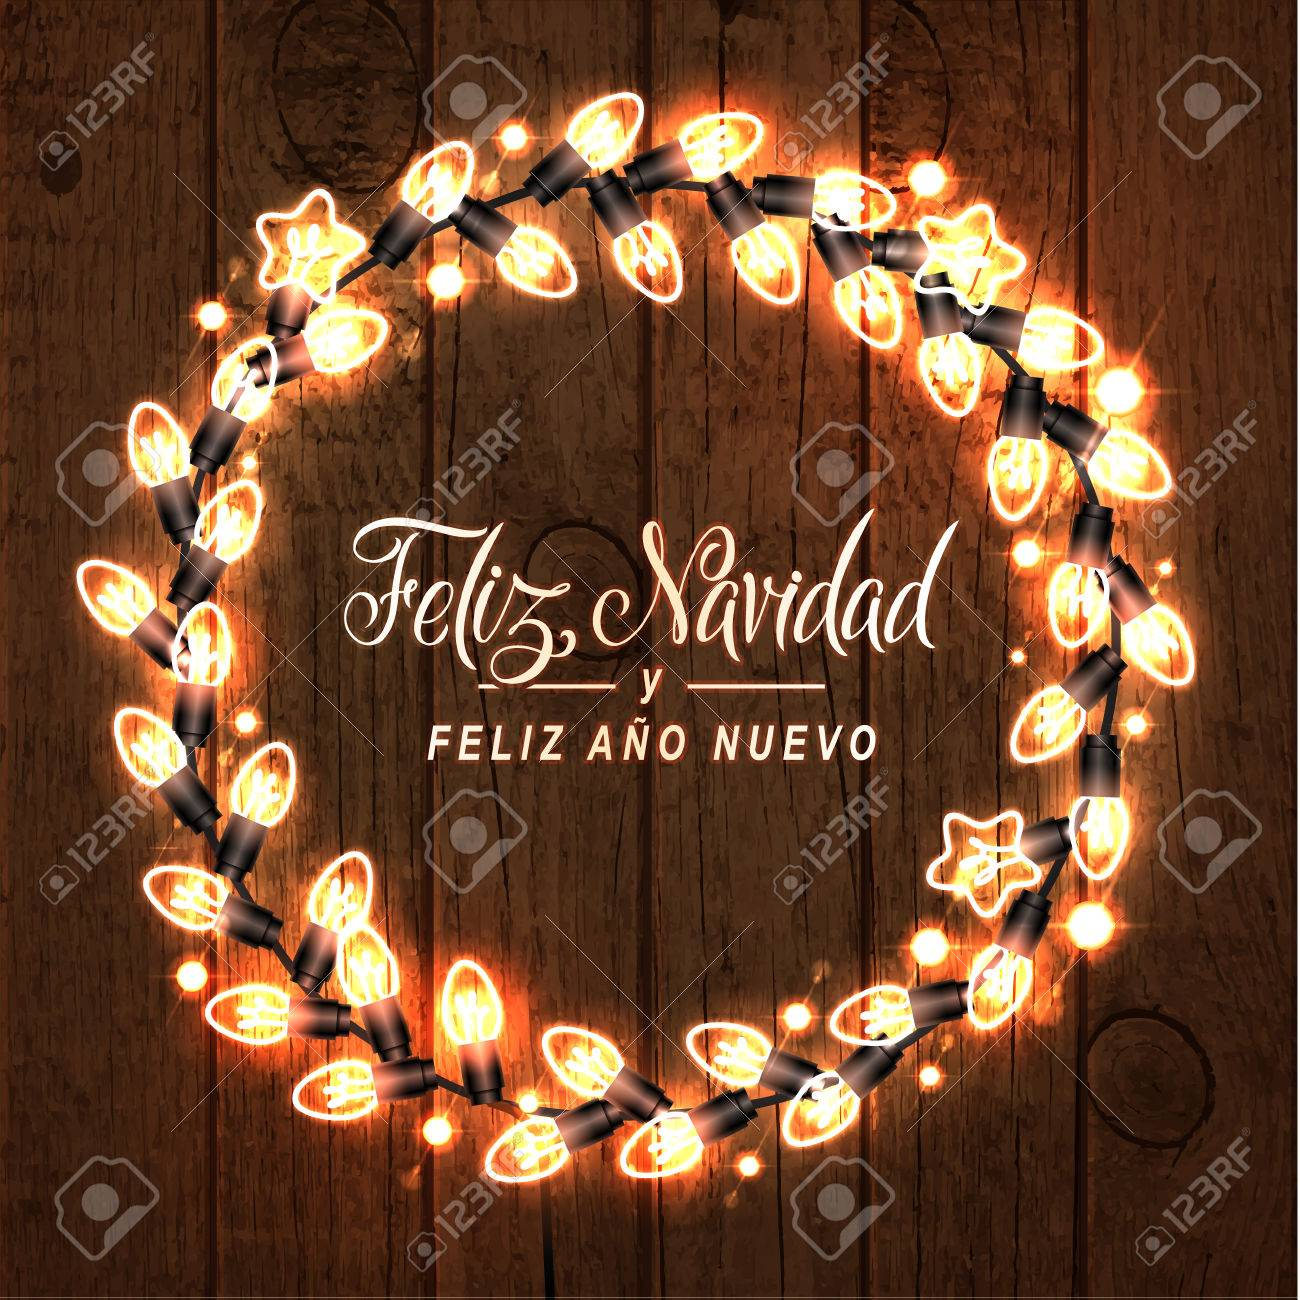 source merry christmas and happy new year spanish language glowing - How Do You Say Merry Christmas In Spanish